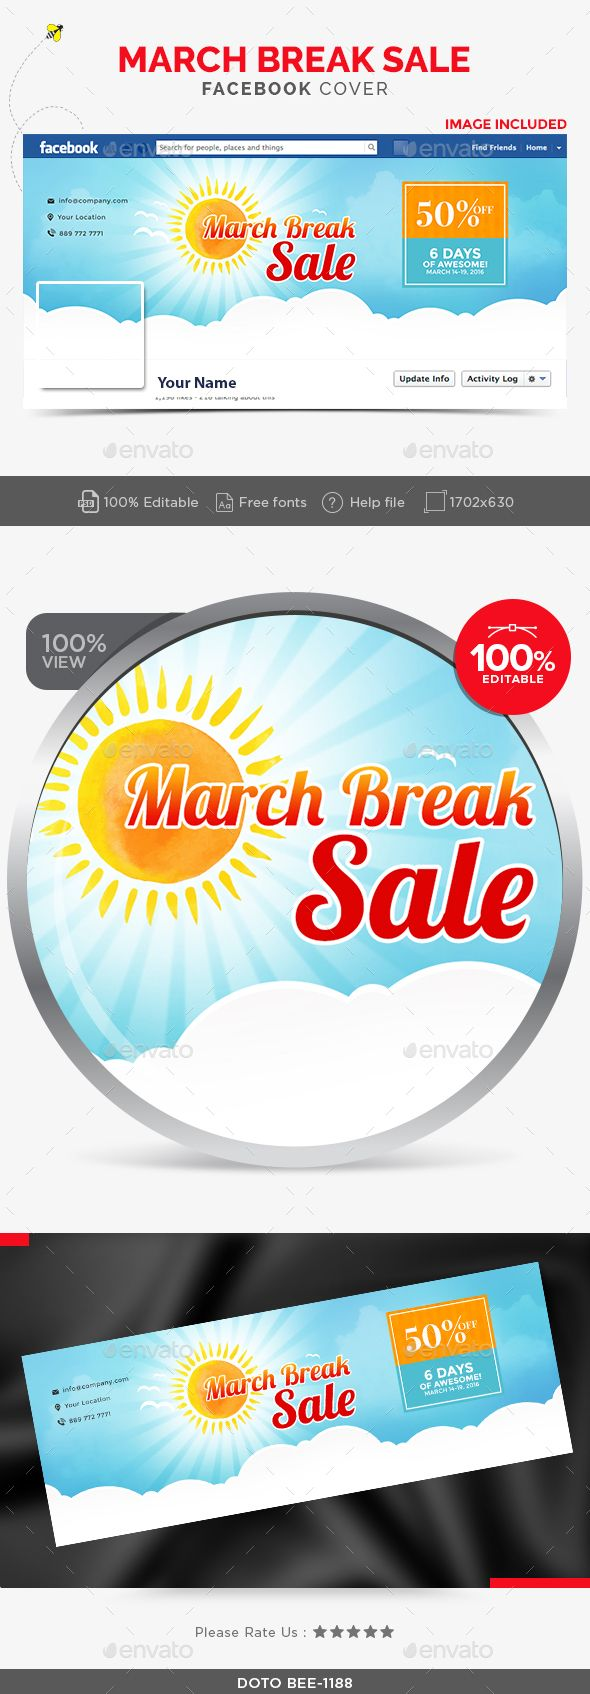 March Break Sale Facebook Cover - Facebook Timeline Covers Social Media | Download http://graphicriver.net/item/march-break-sale-facebook-cover/15174438?ref=sinzo